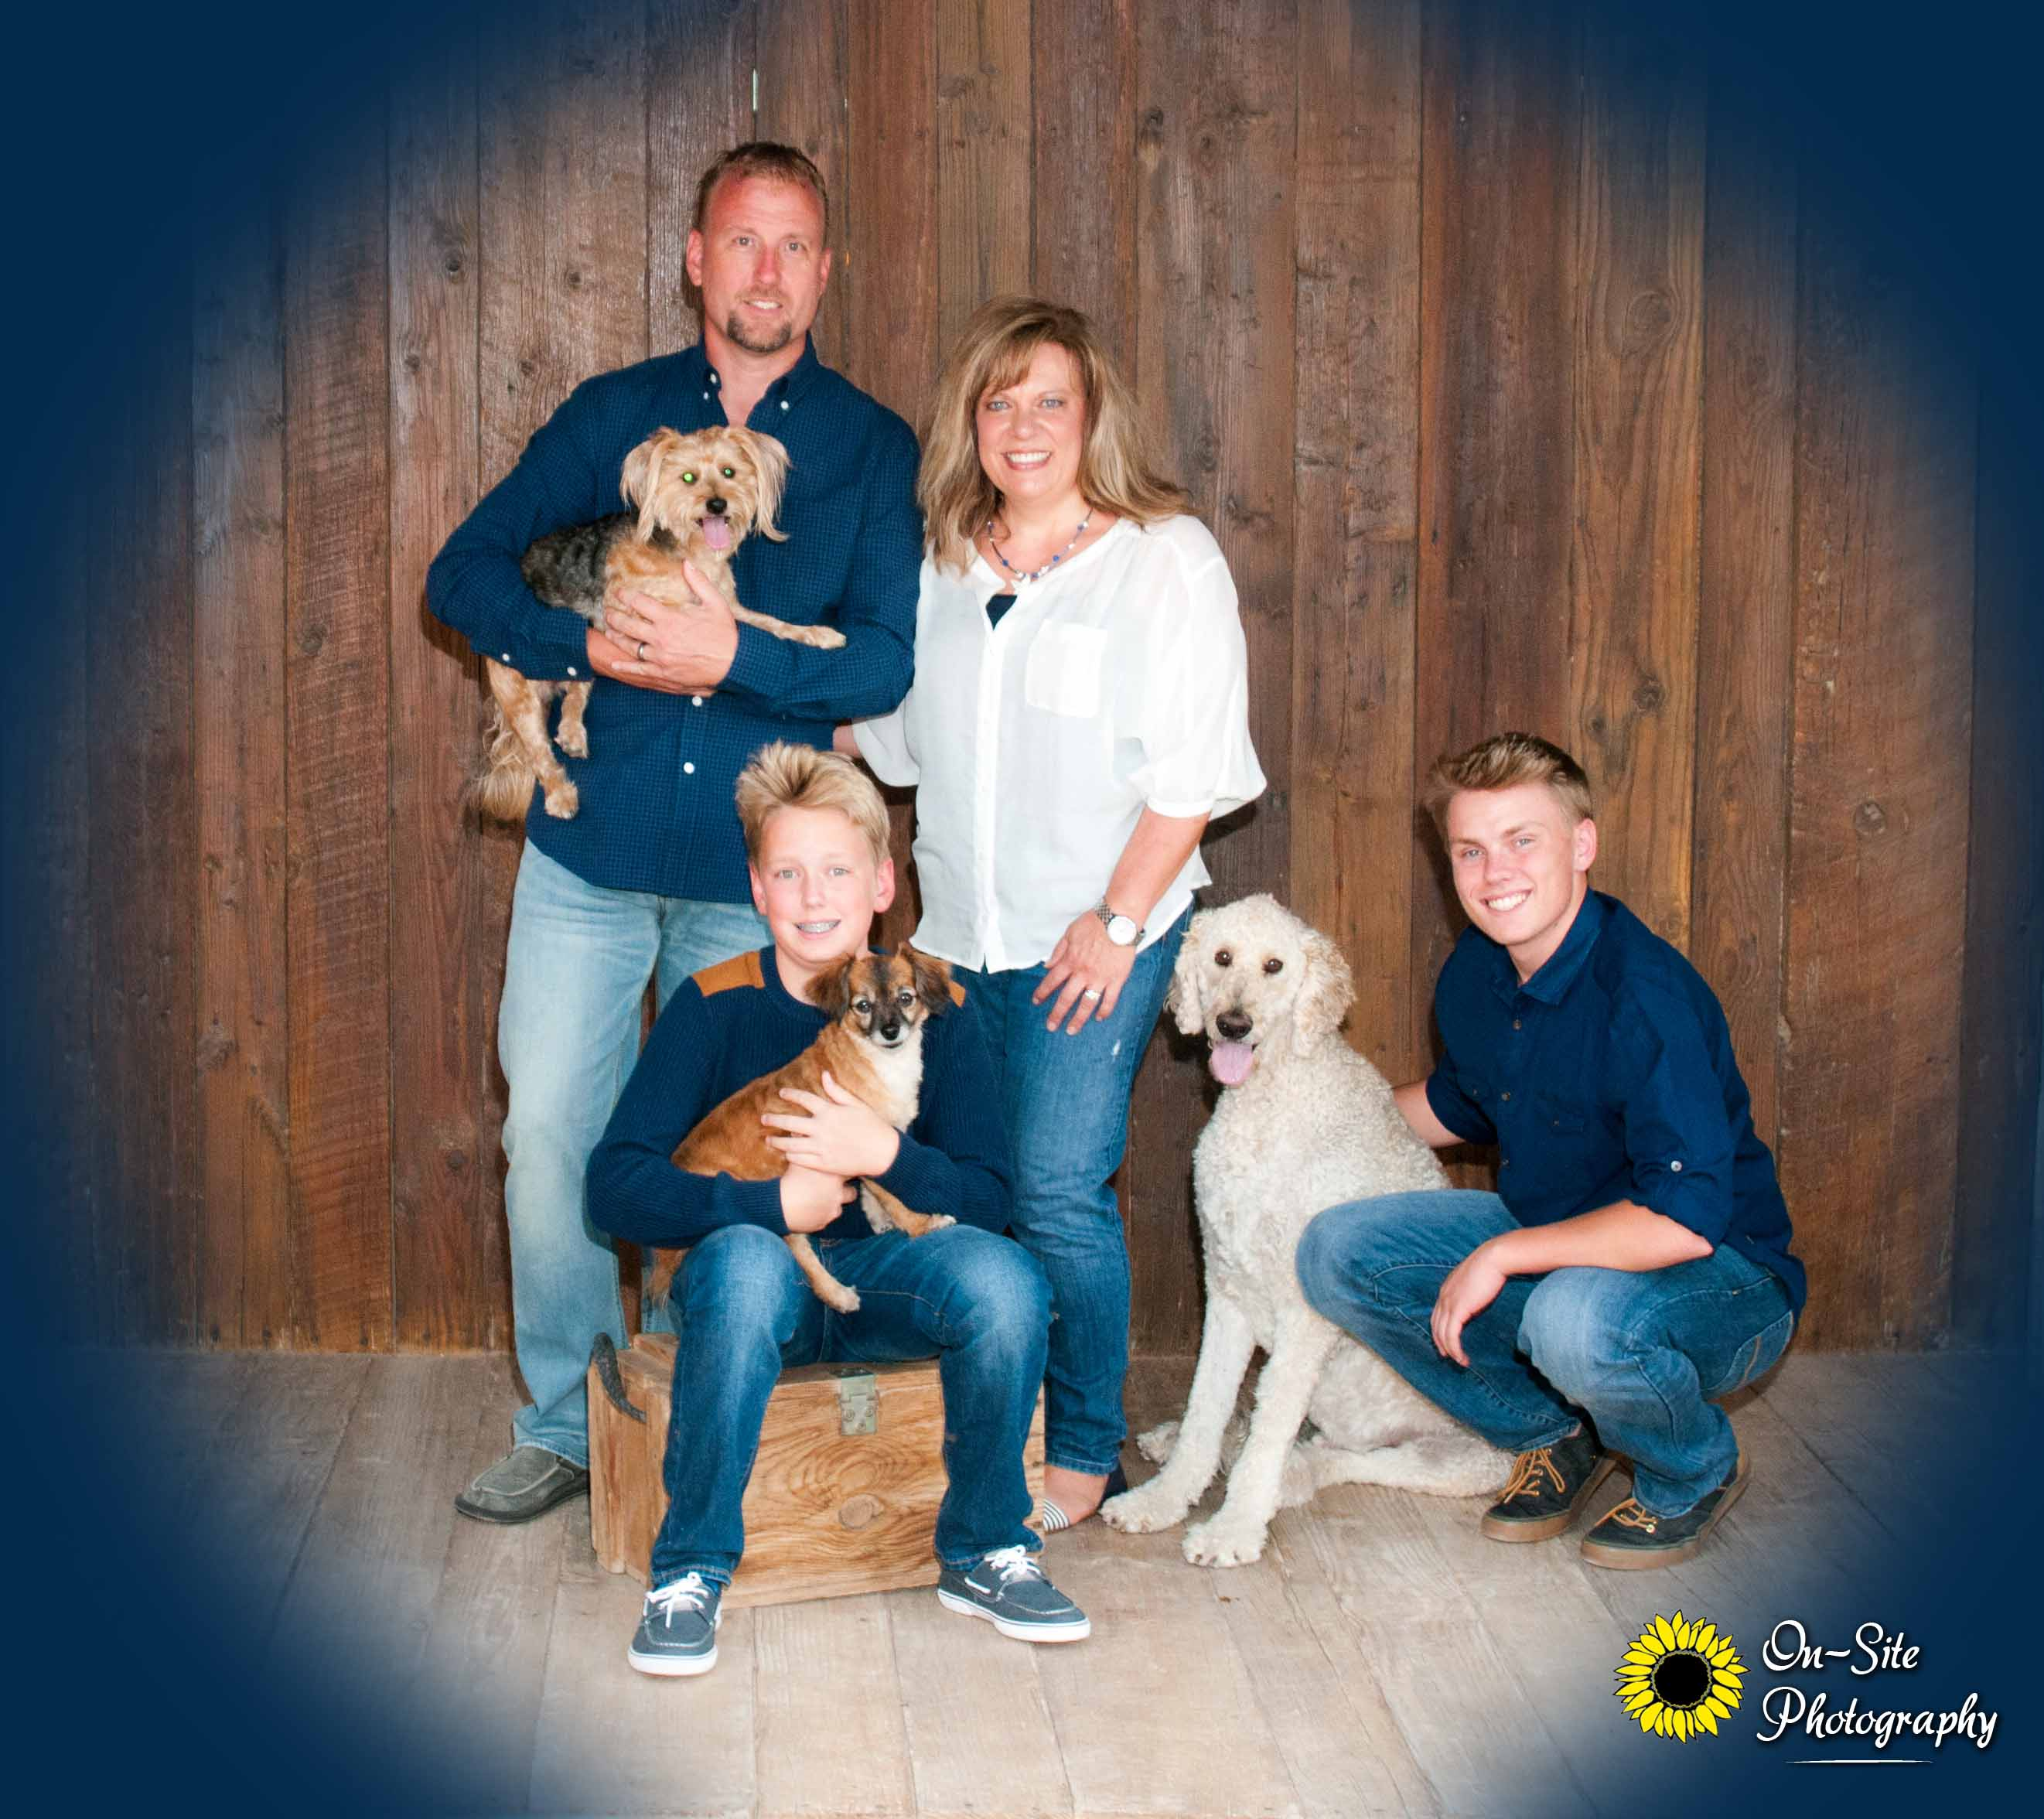 family photos, pet friendly studio, buckeye photographer, family portraits